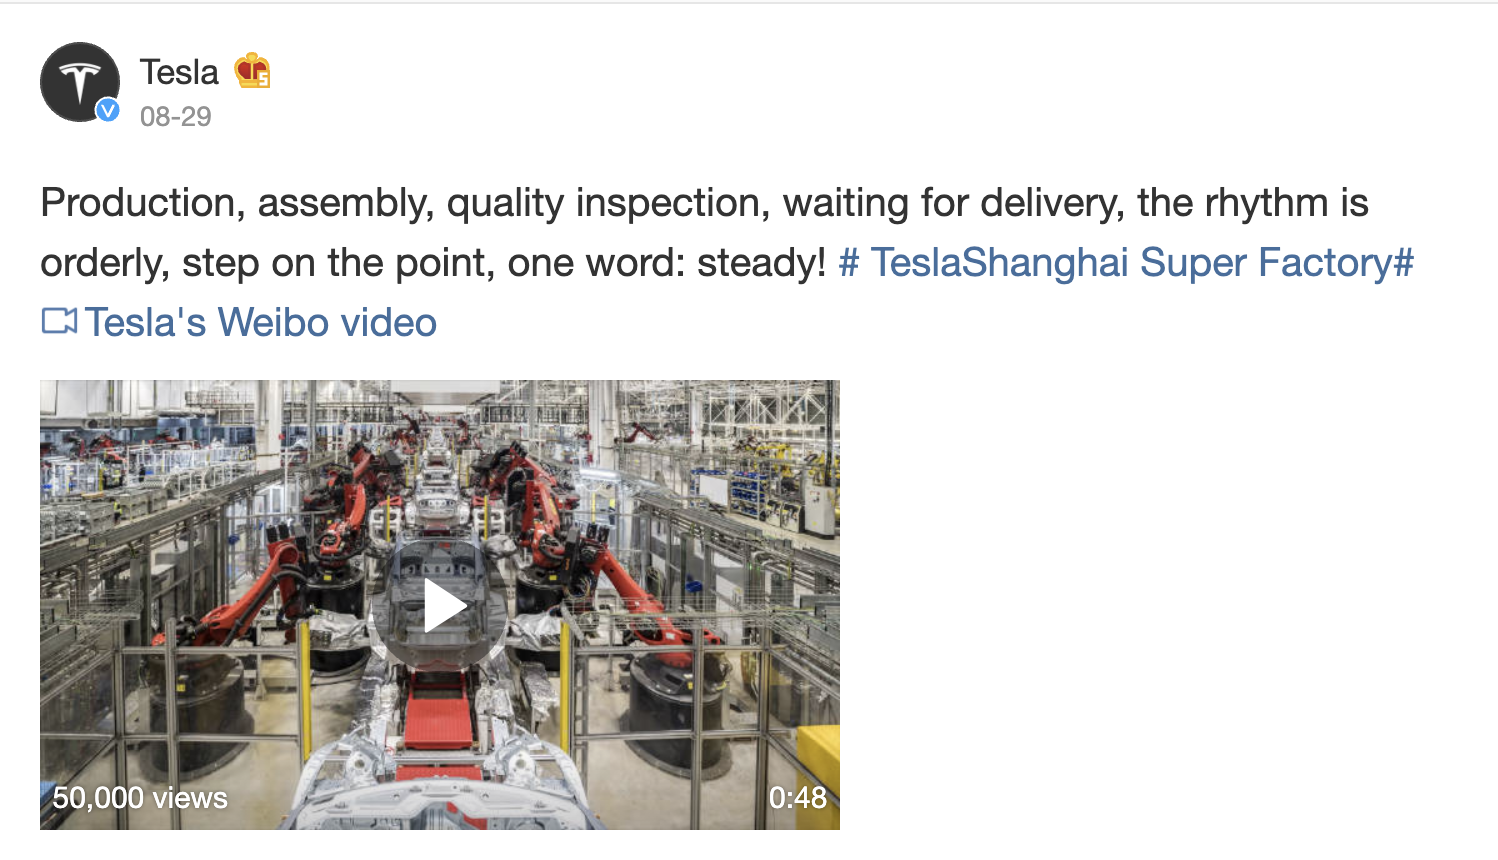 tesla-giga-shanghai-production-timelapse-video